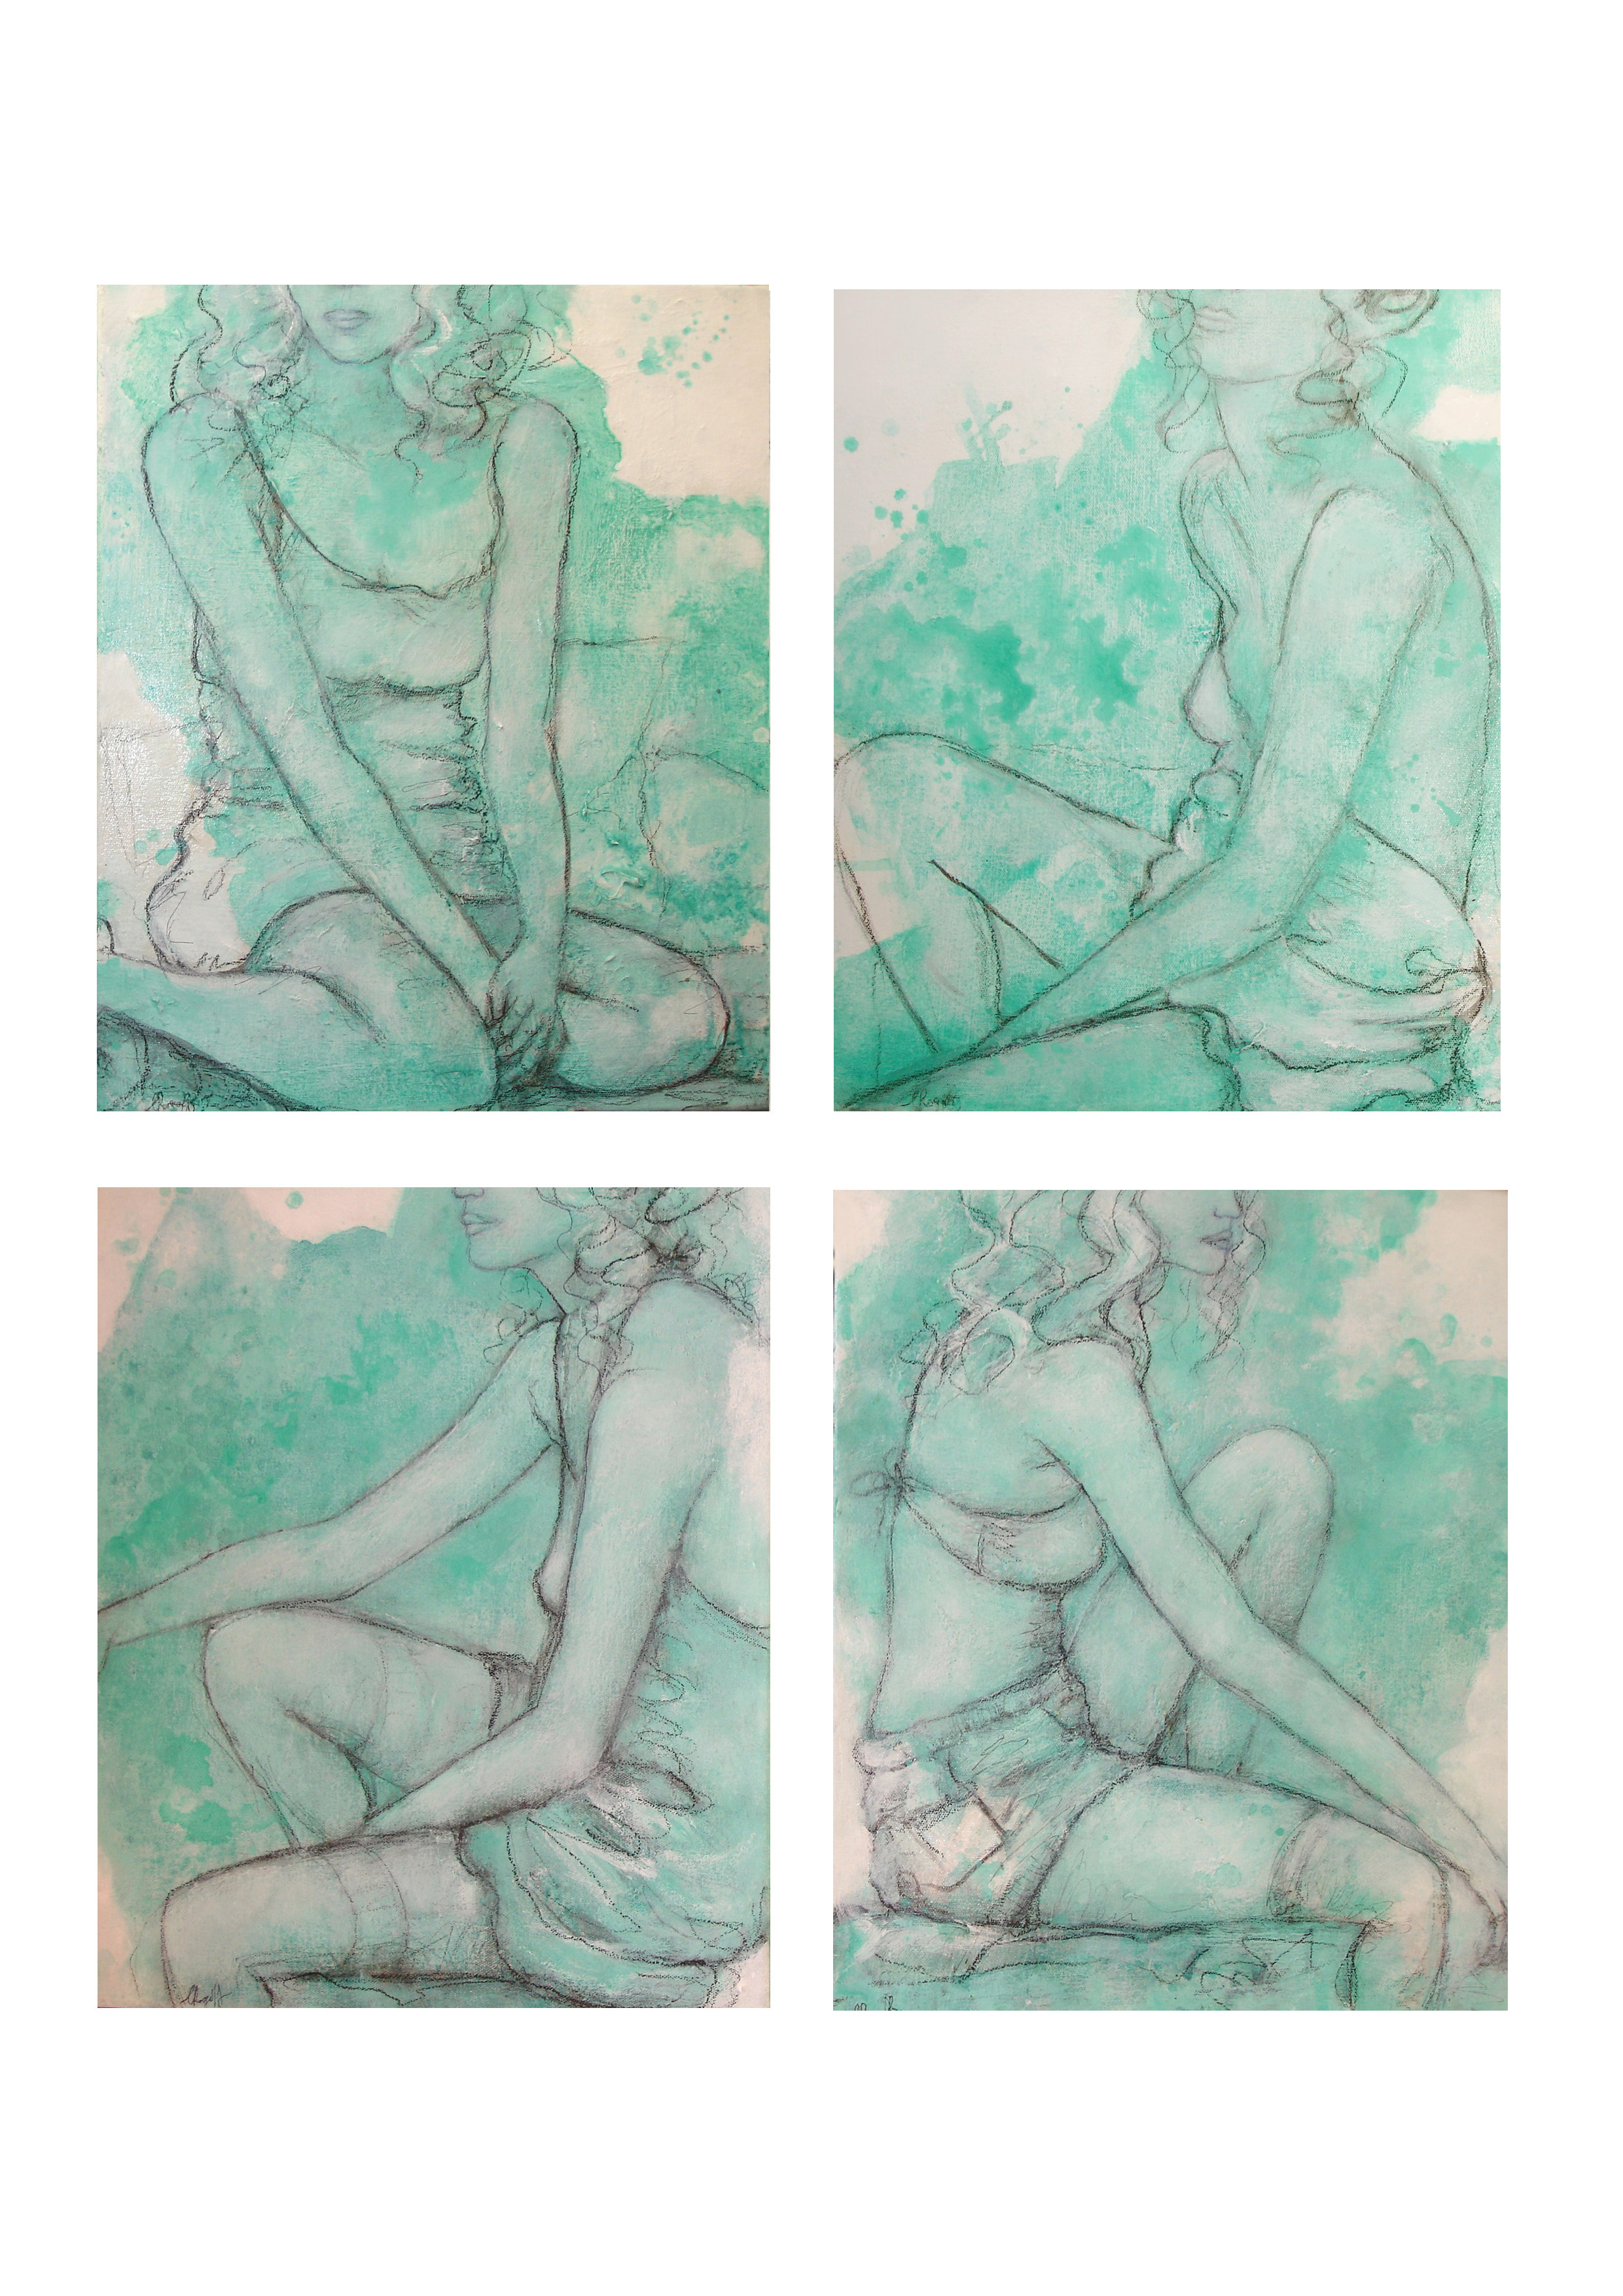 Damsels in Undress, 28 x 34cm